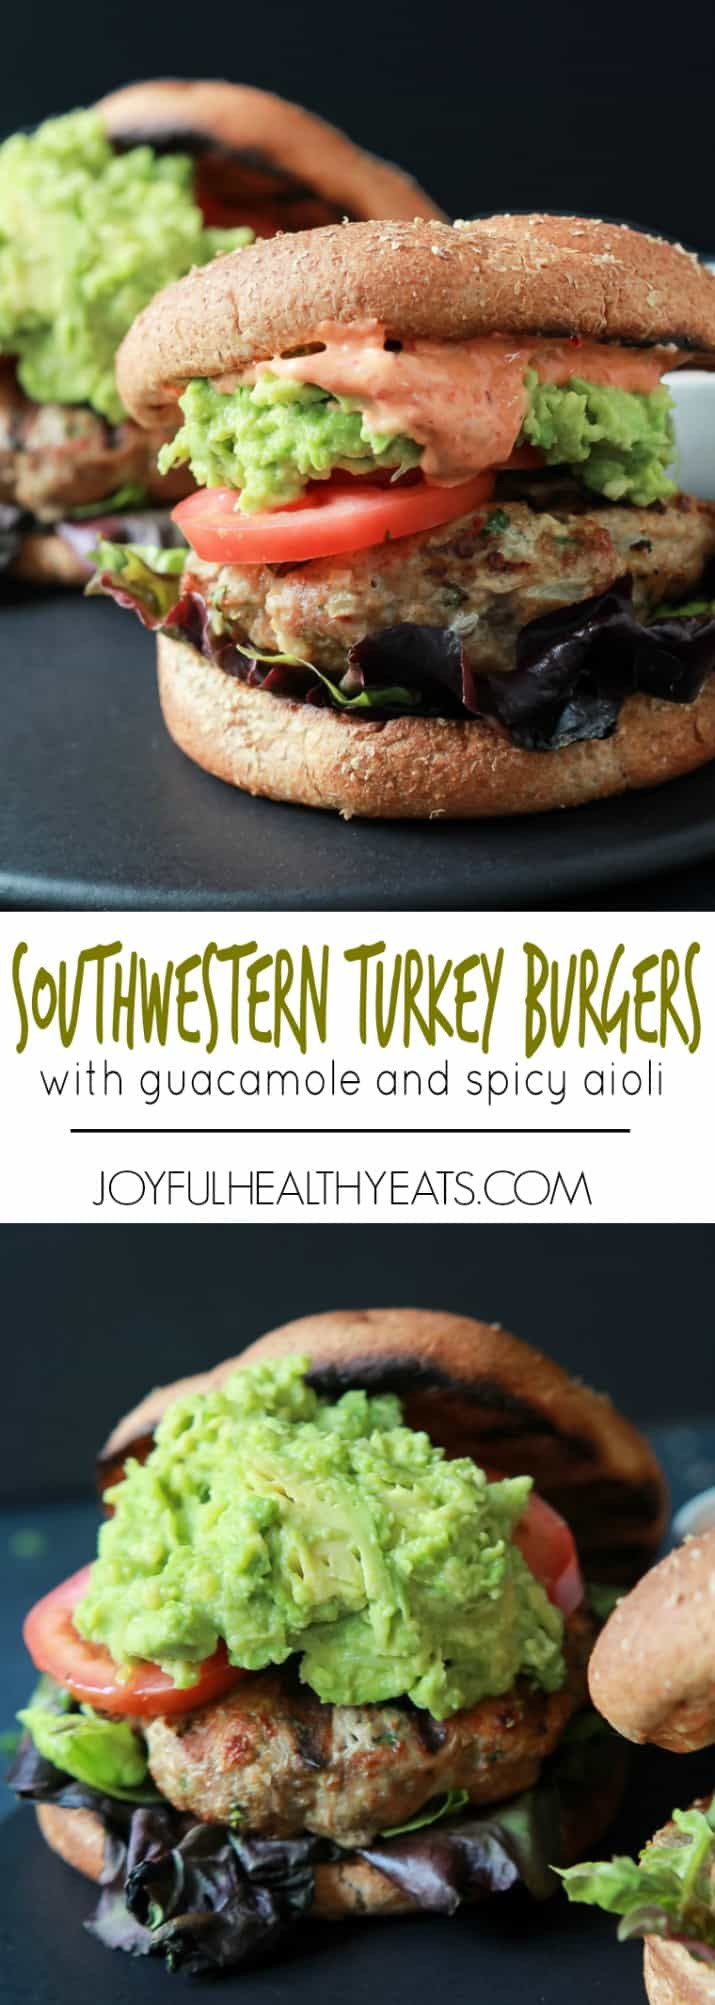 Southwestern Turkey Burgers with Guacamole and Spicy Aioli ...